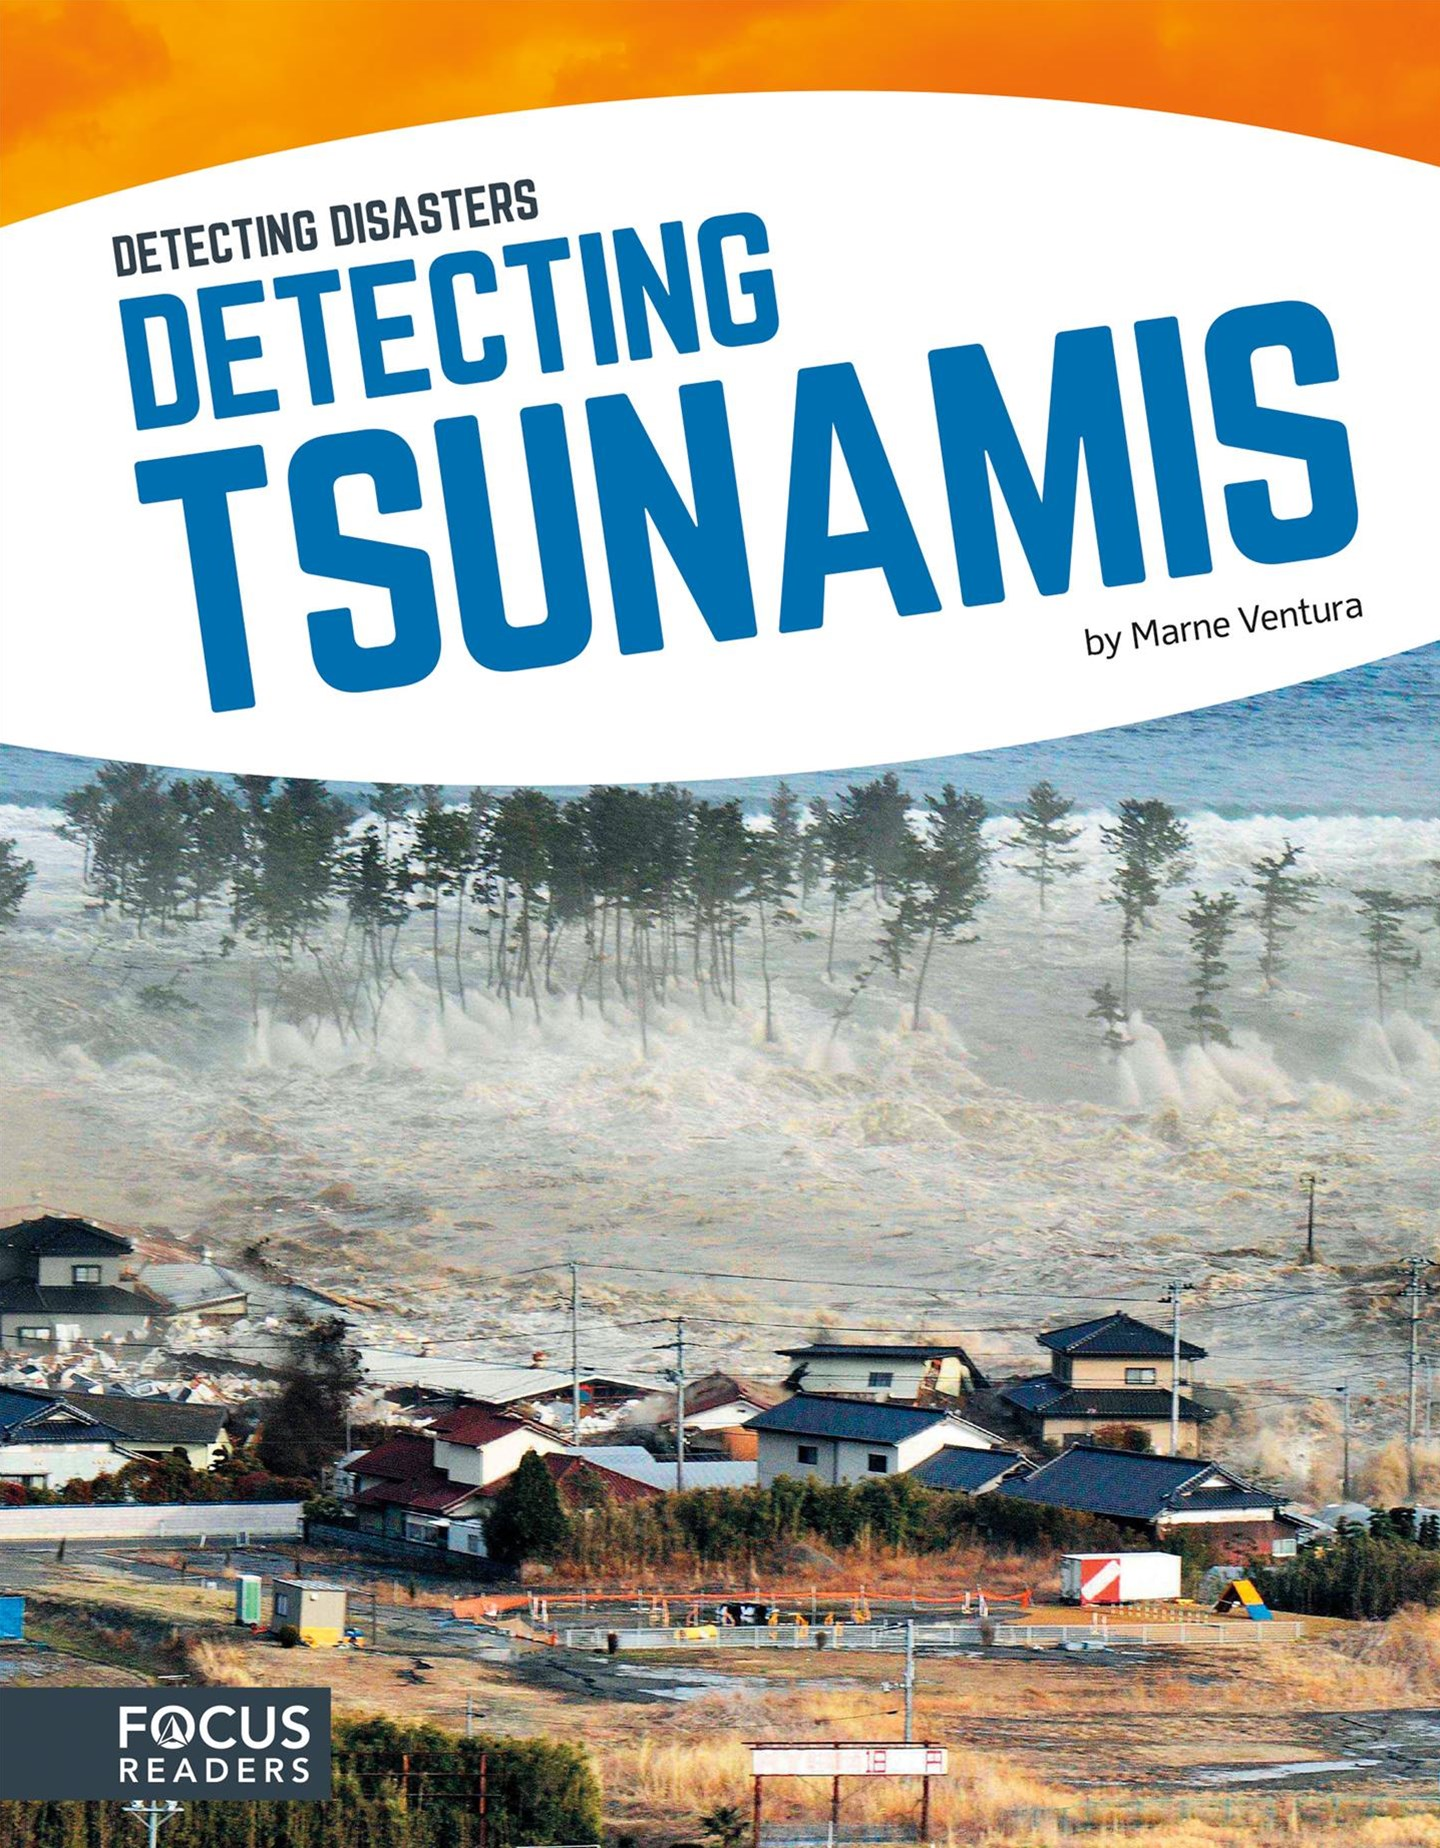 Detecting Diasaters: Detecting Tsunamis